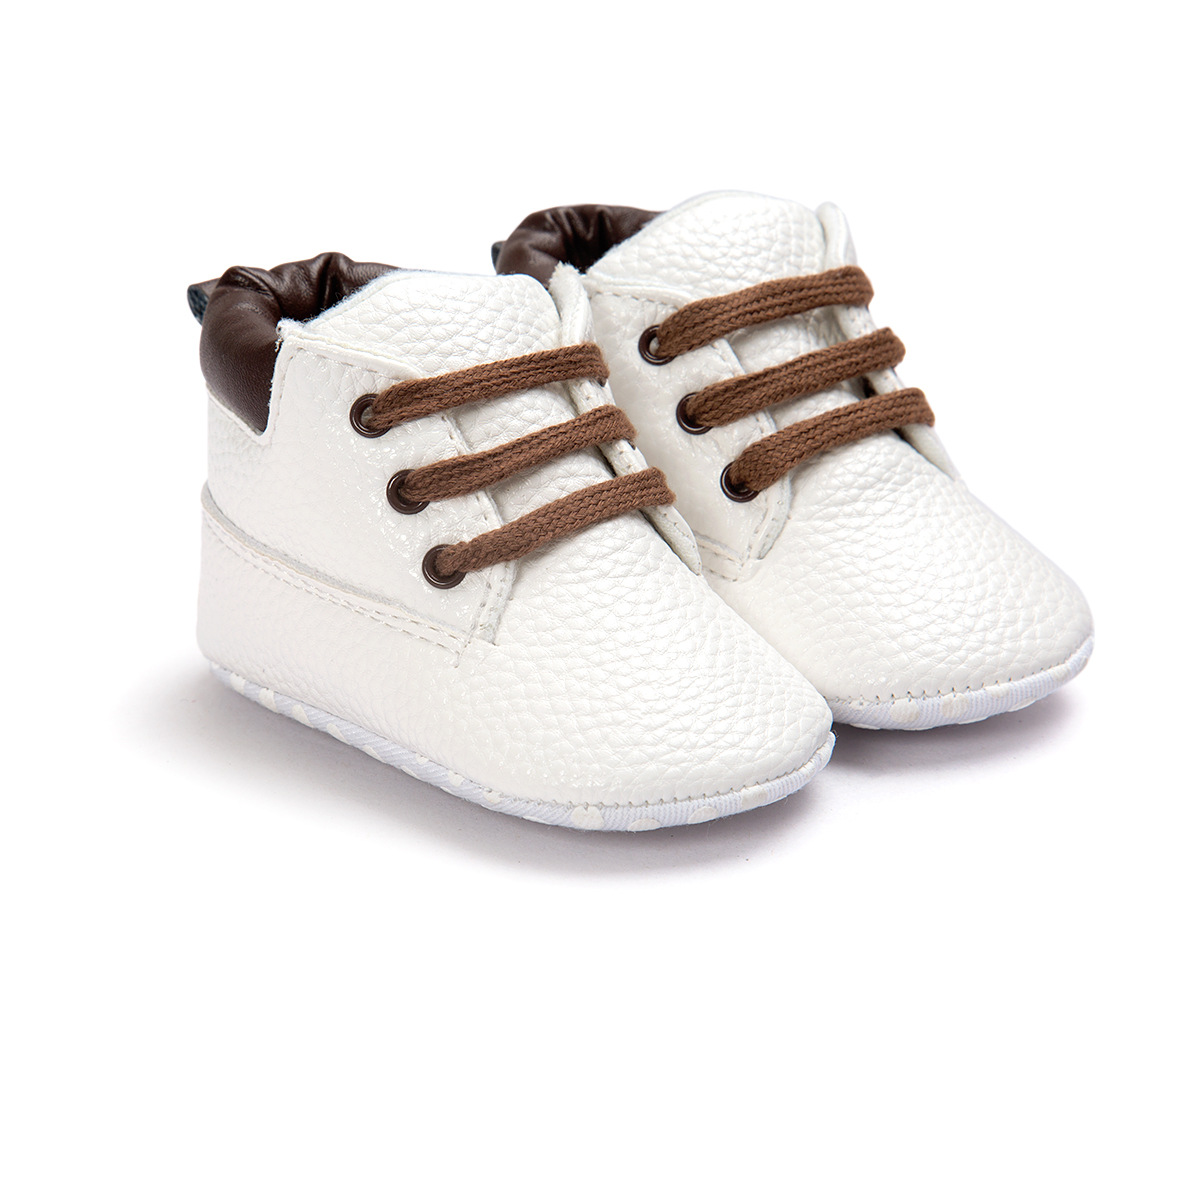 White Spring PU Leather 12 Color Baby Boy Baby Casual Shoes Girl Toddler Shoes Sapatos De Bebe Newborn First Walkers